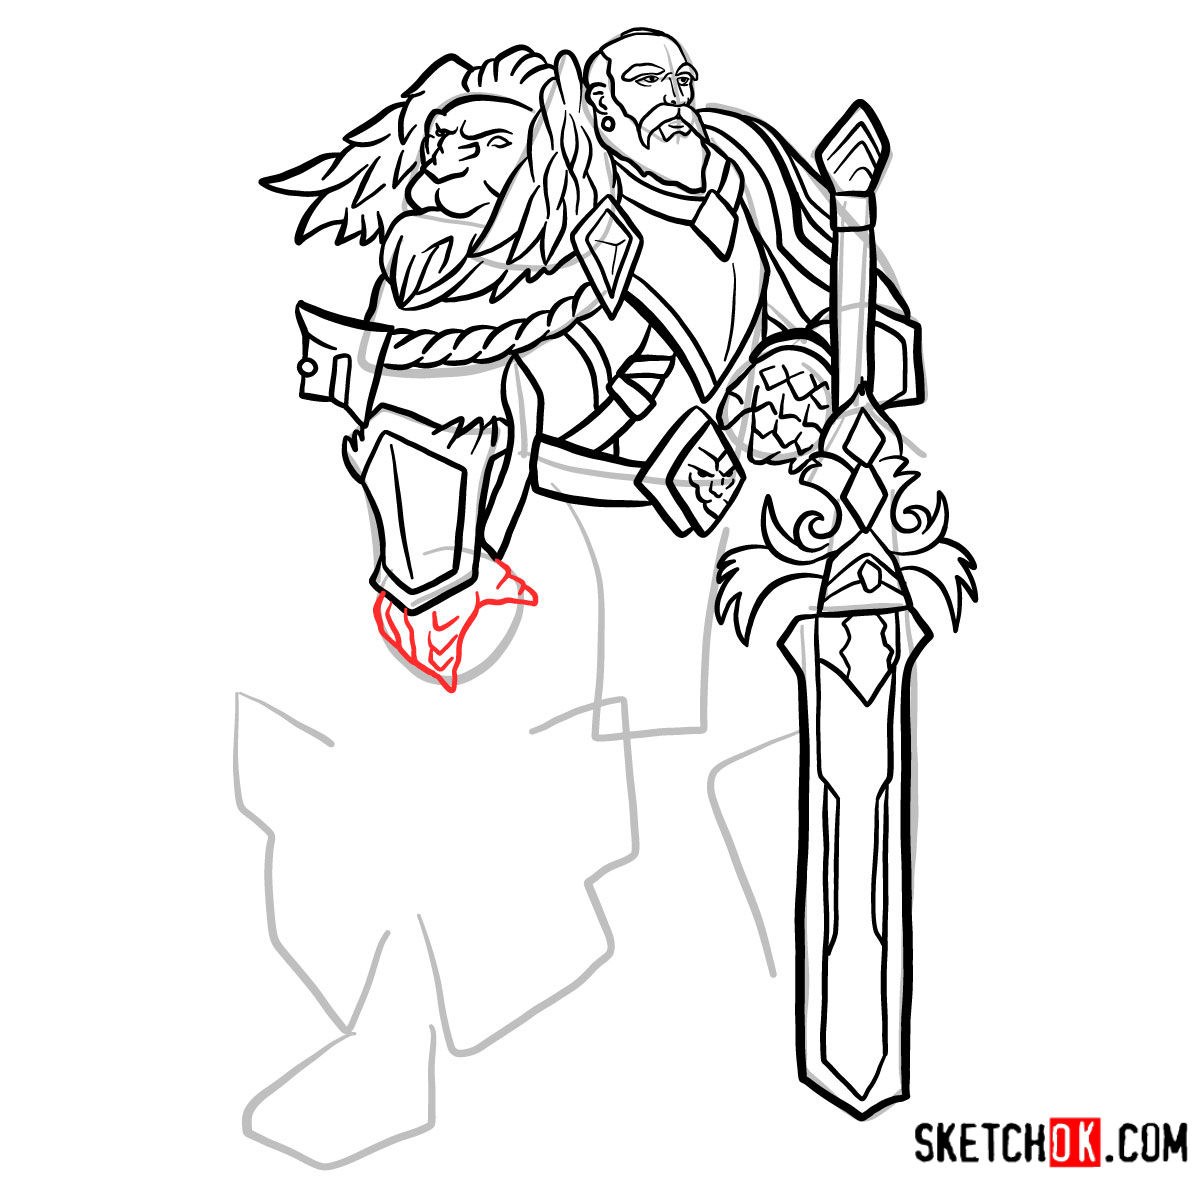 How to draw Lord Anduin Lothar | World of Warcraft - step 13